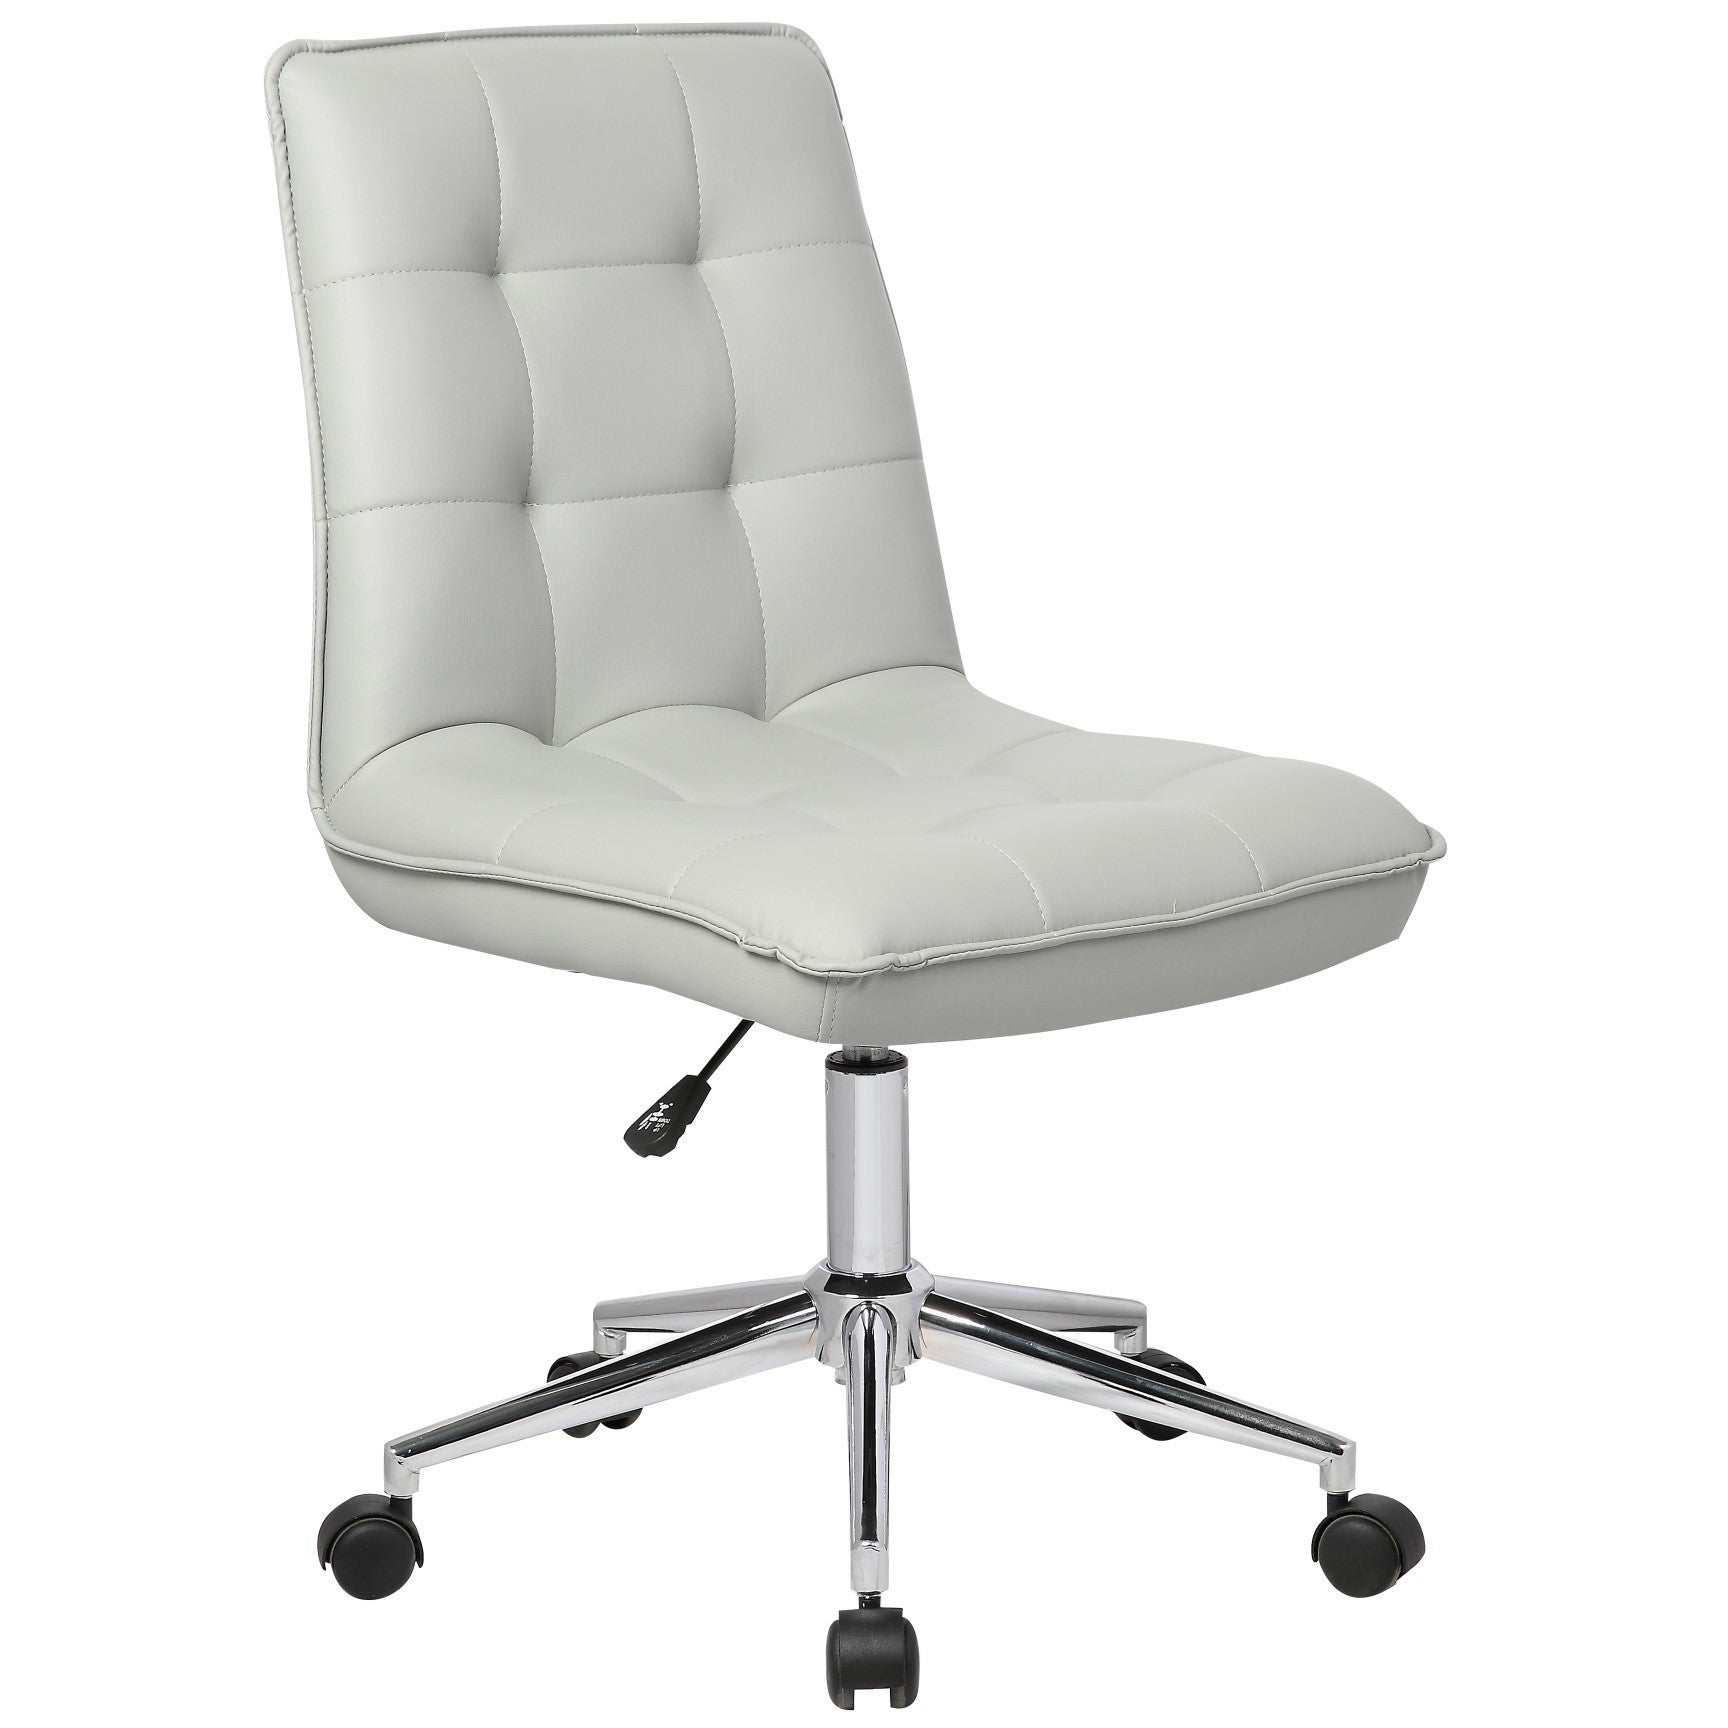 spoon products en r kartell grey black chairs office chair